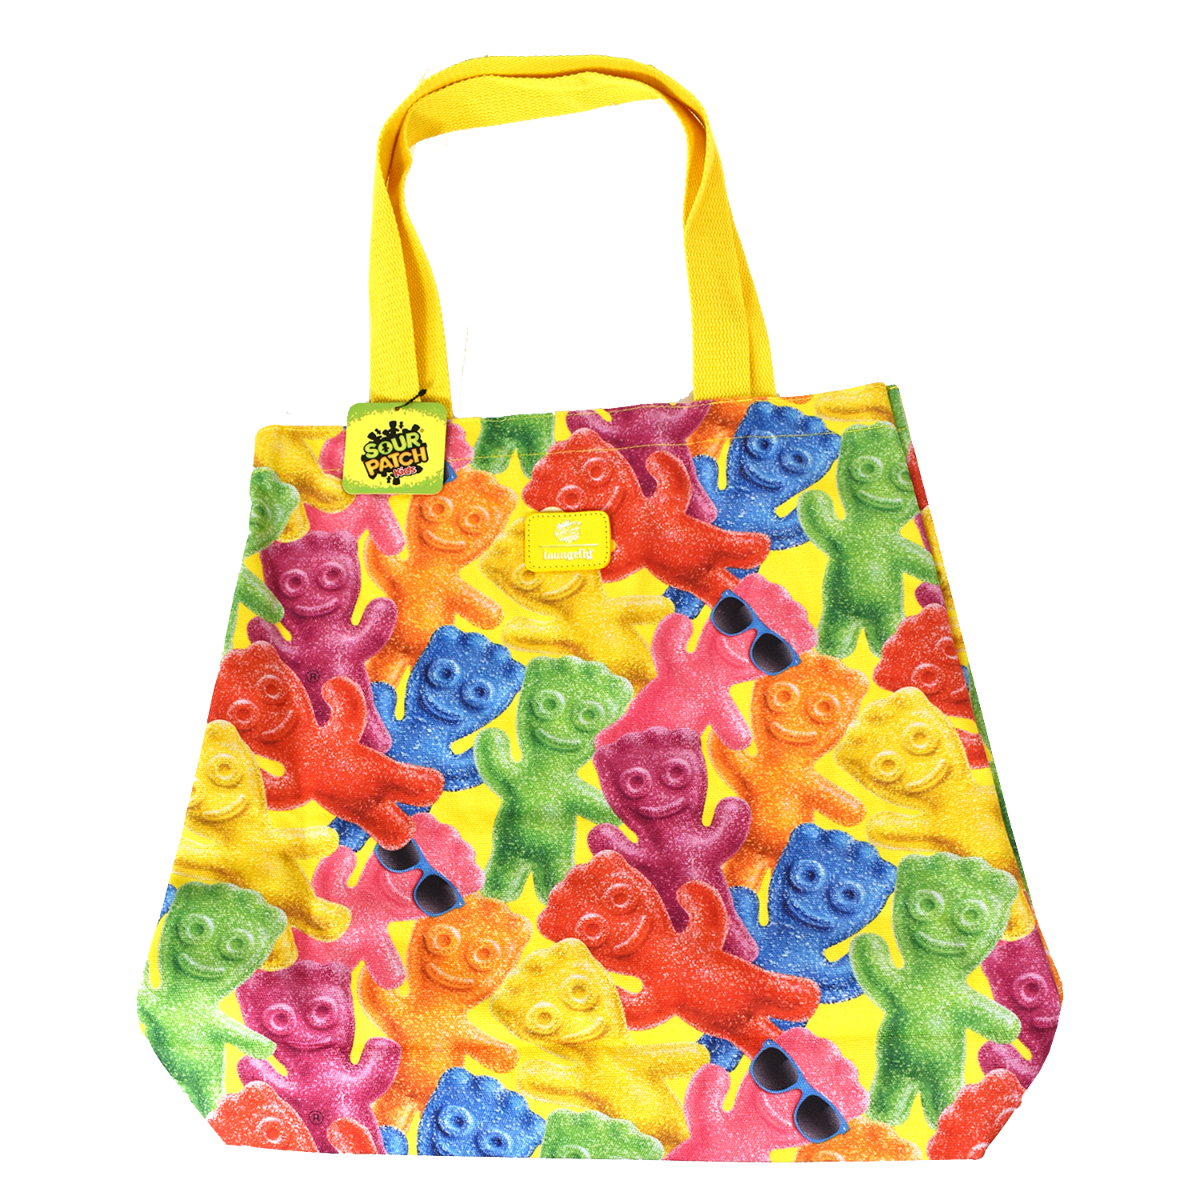 Shop Accessories from SOUR PATCH KIDS